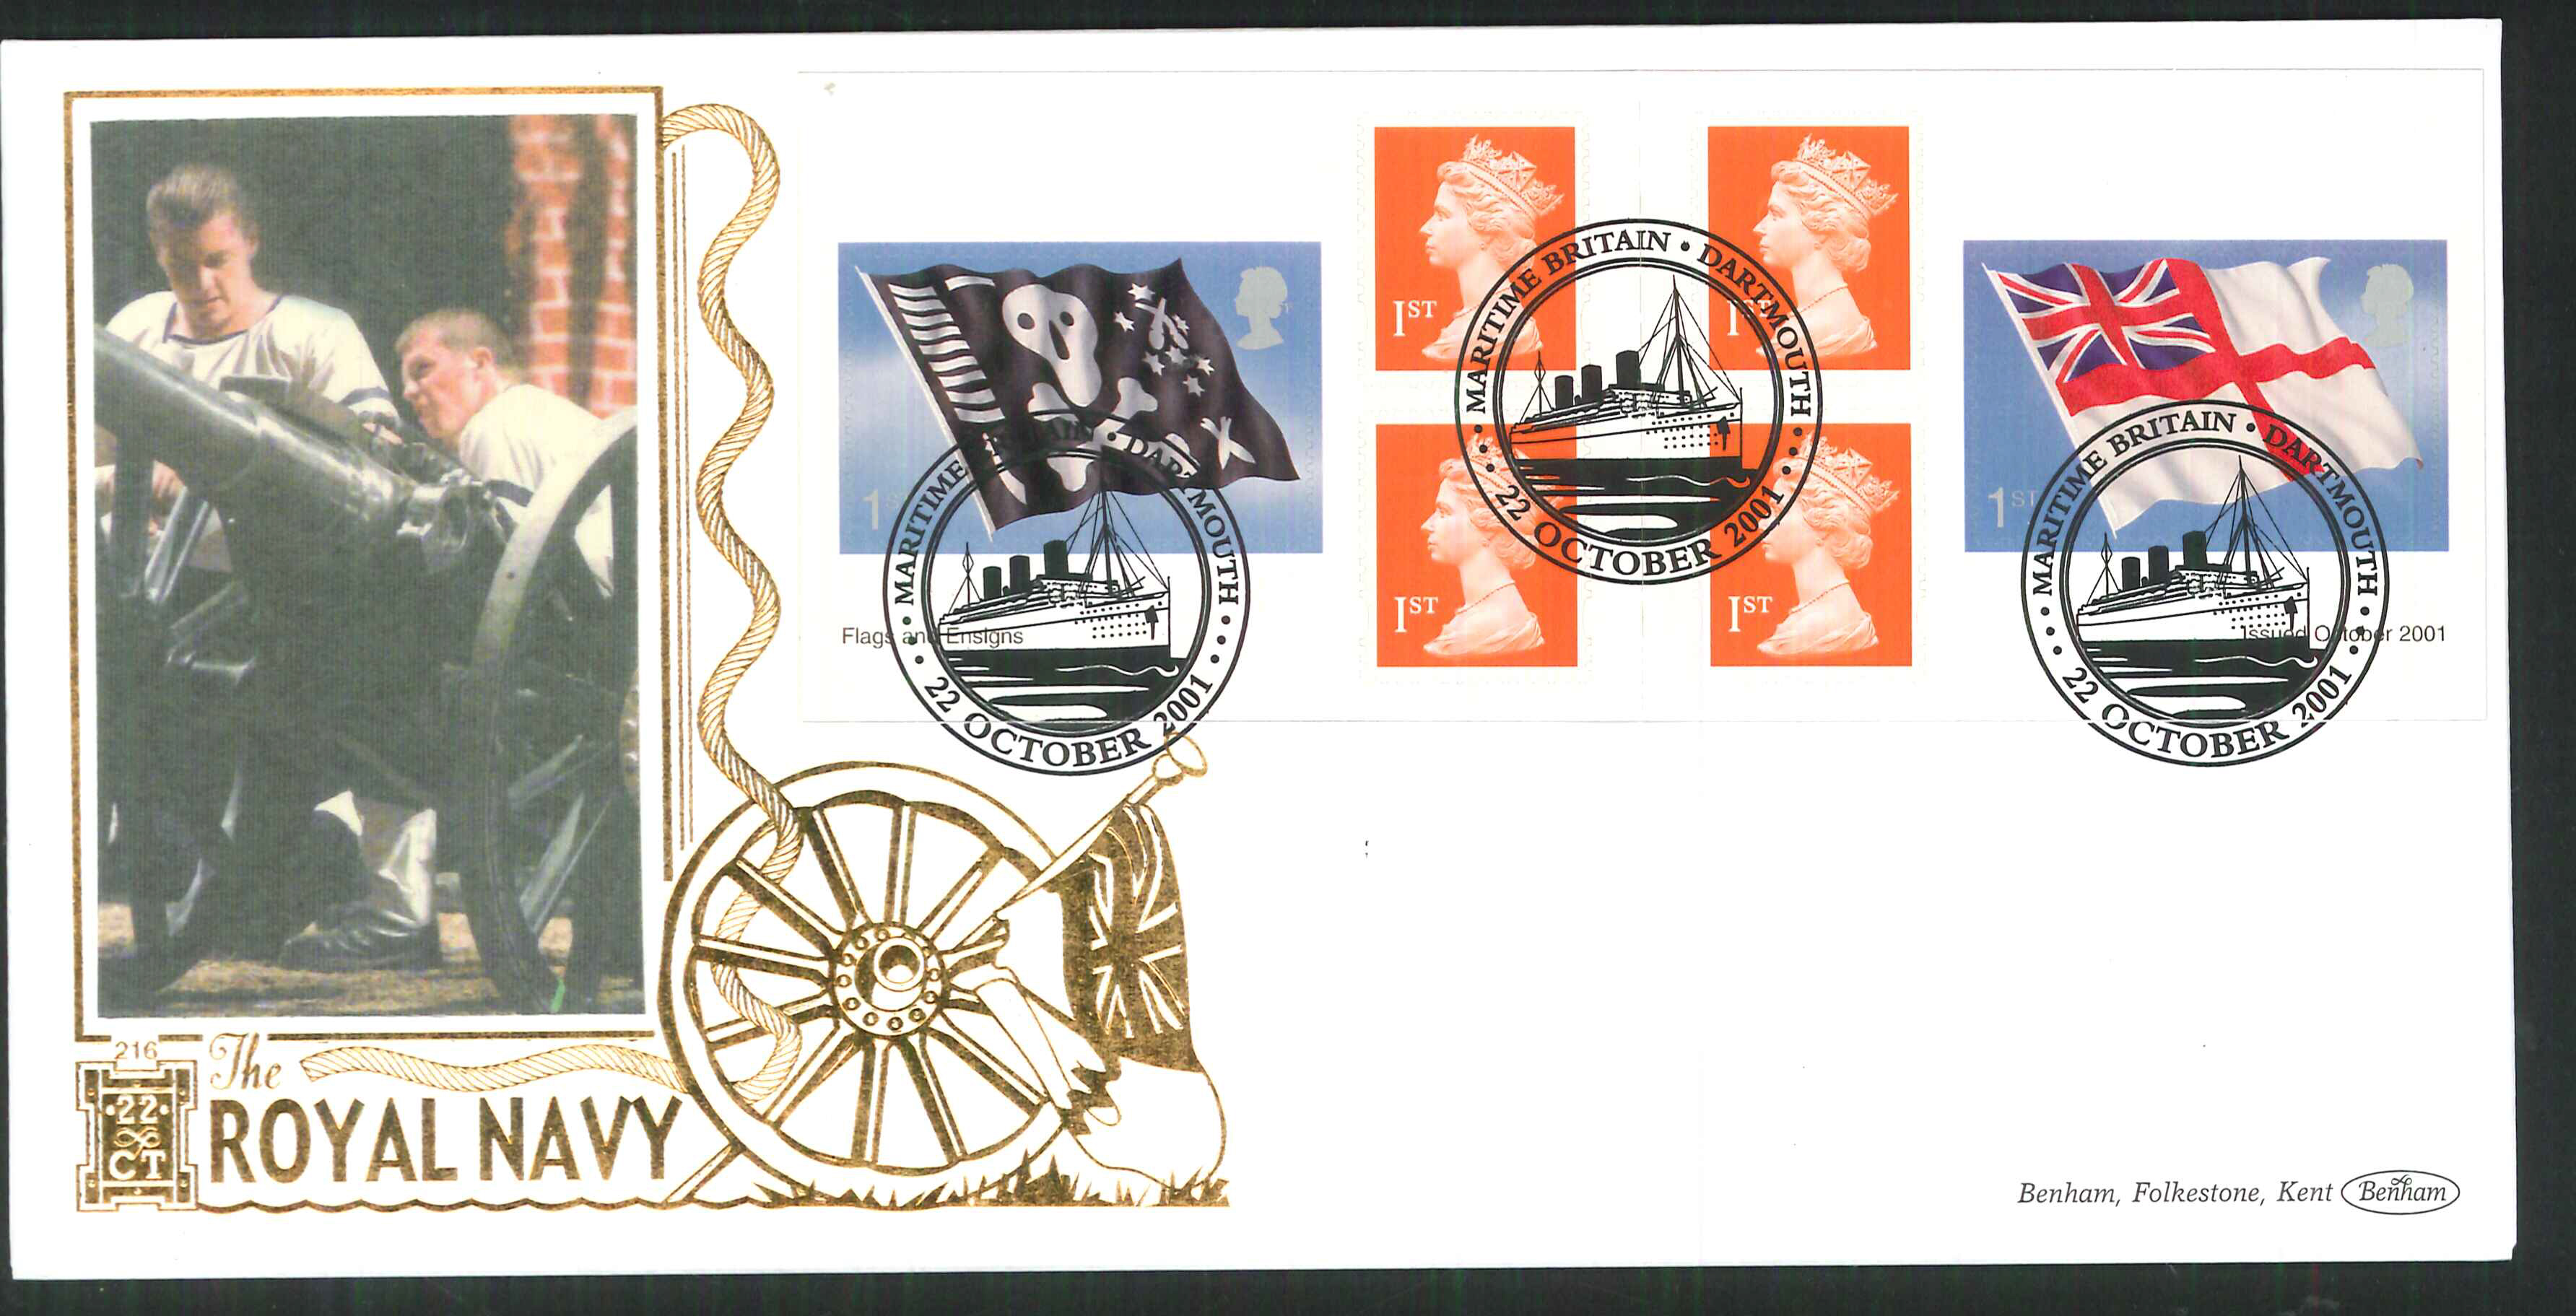 2001 - Flags & Ensigns Retail Book FDC Benham 22ct Gold 500 - Dartmouth Postmark